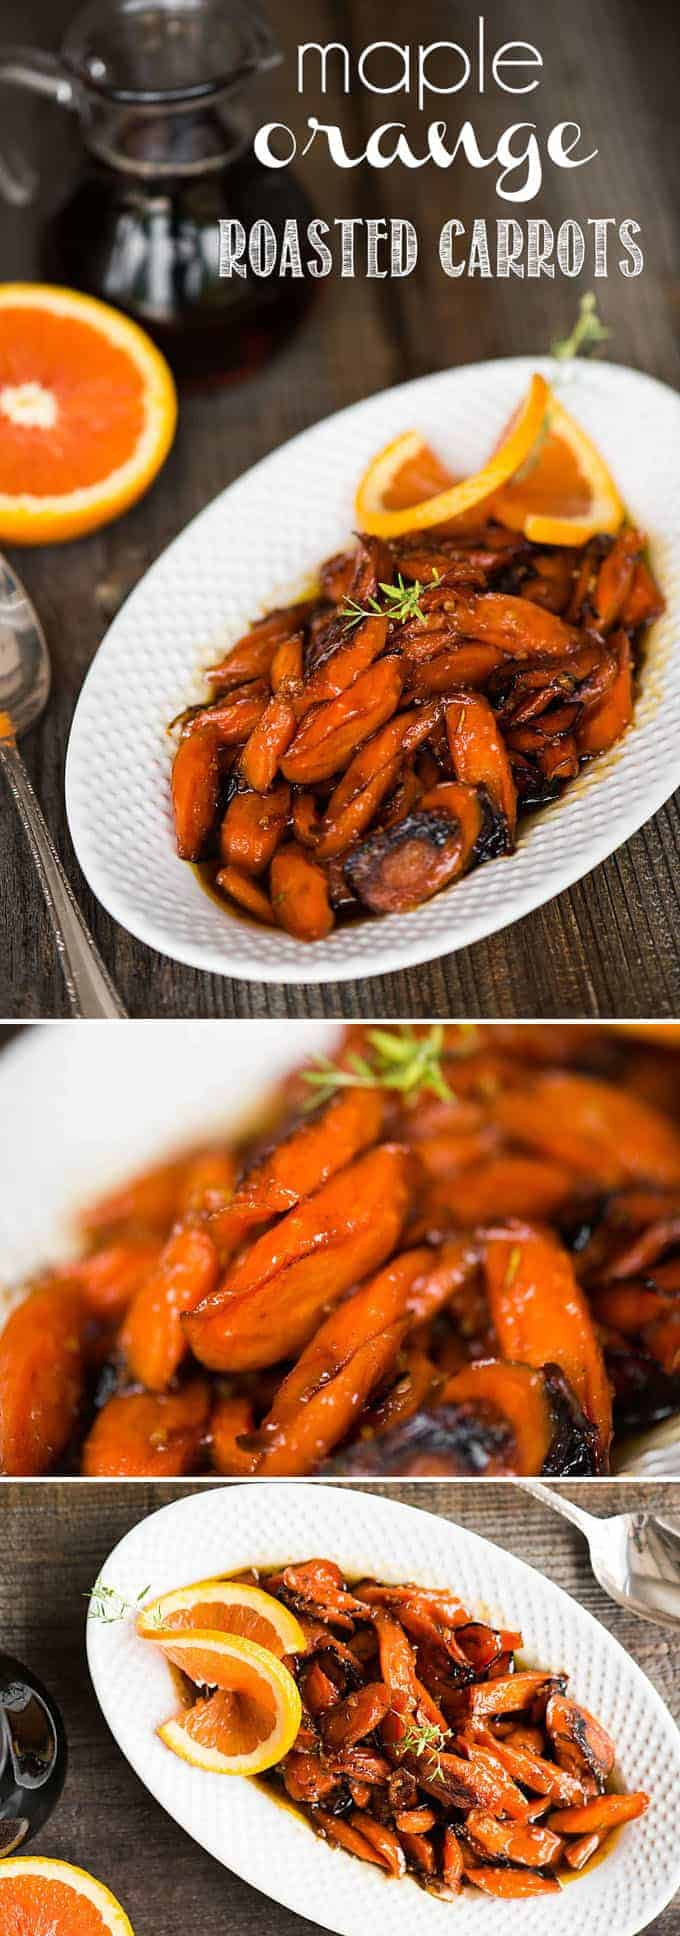 Maple Orange Roasted Carrots, with pure maple syrup, orange, and herbs, are an easy carrot side dish that is perfect for any dinner or holiday feast.